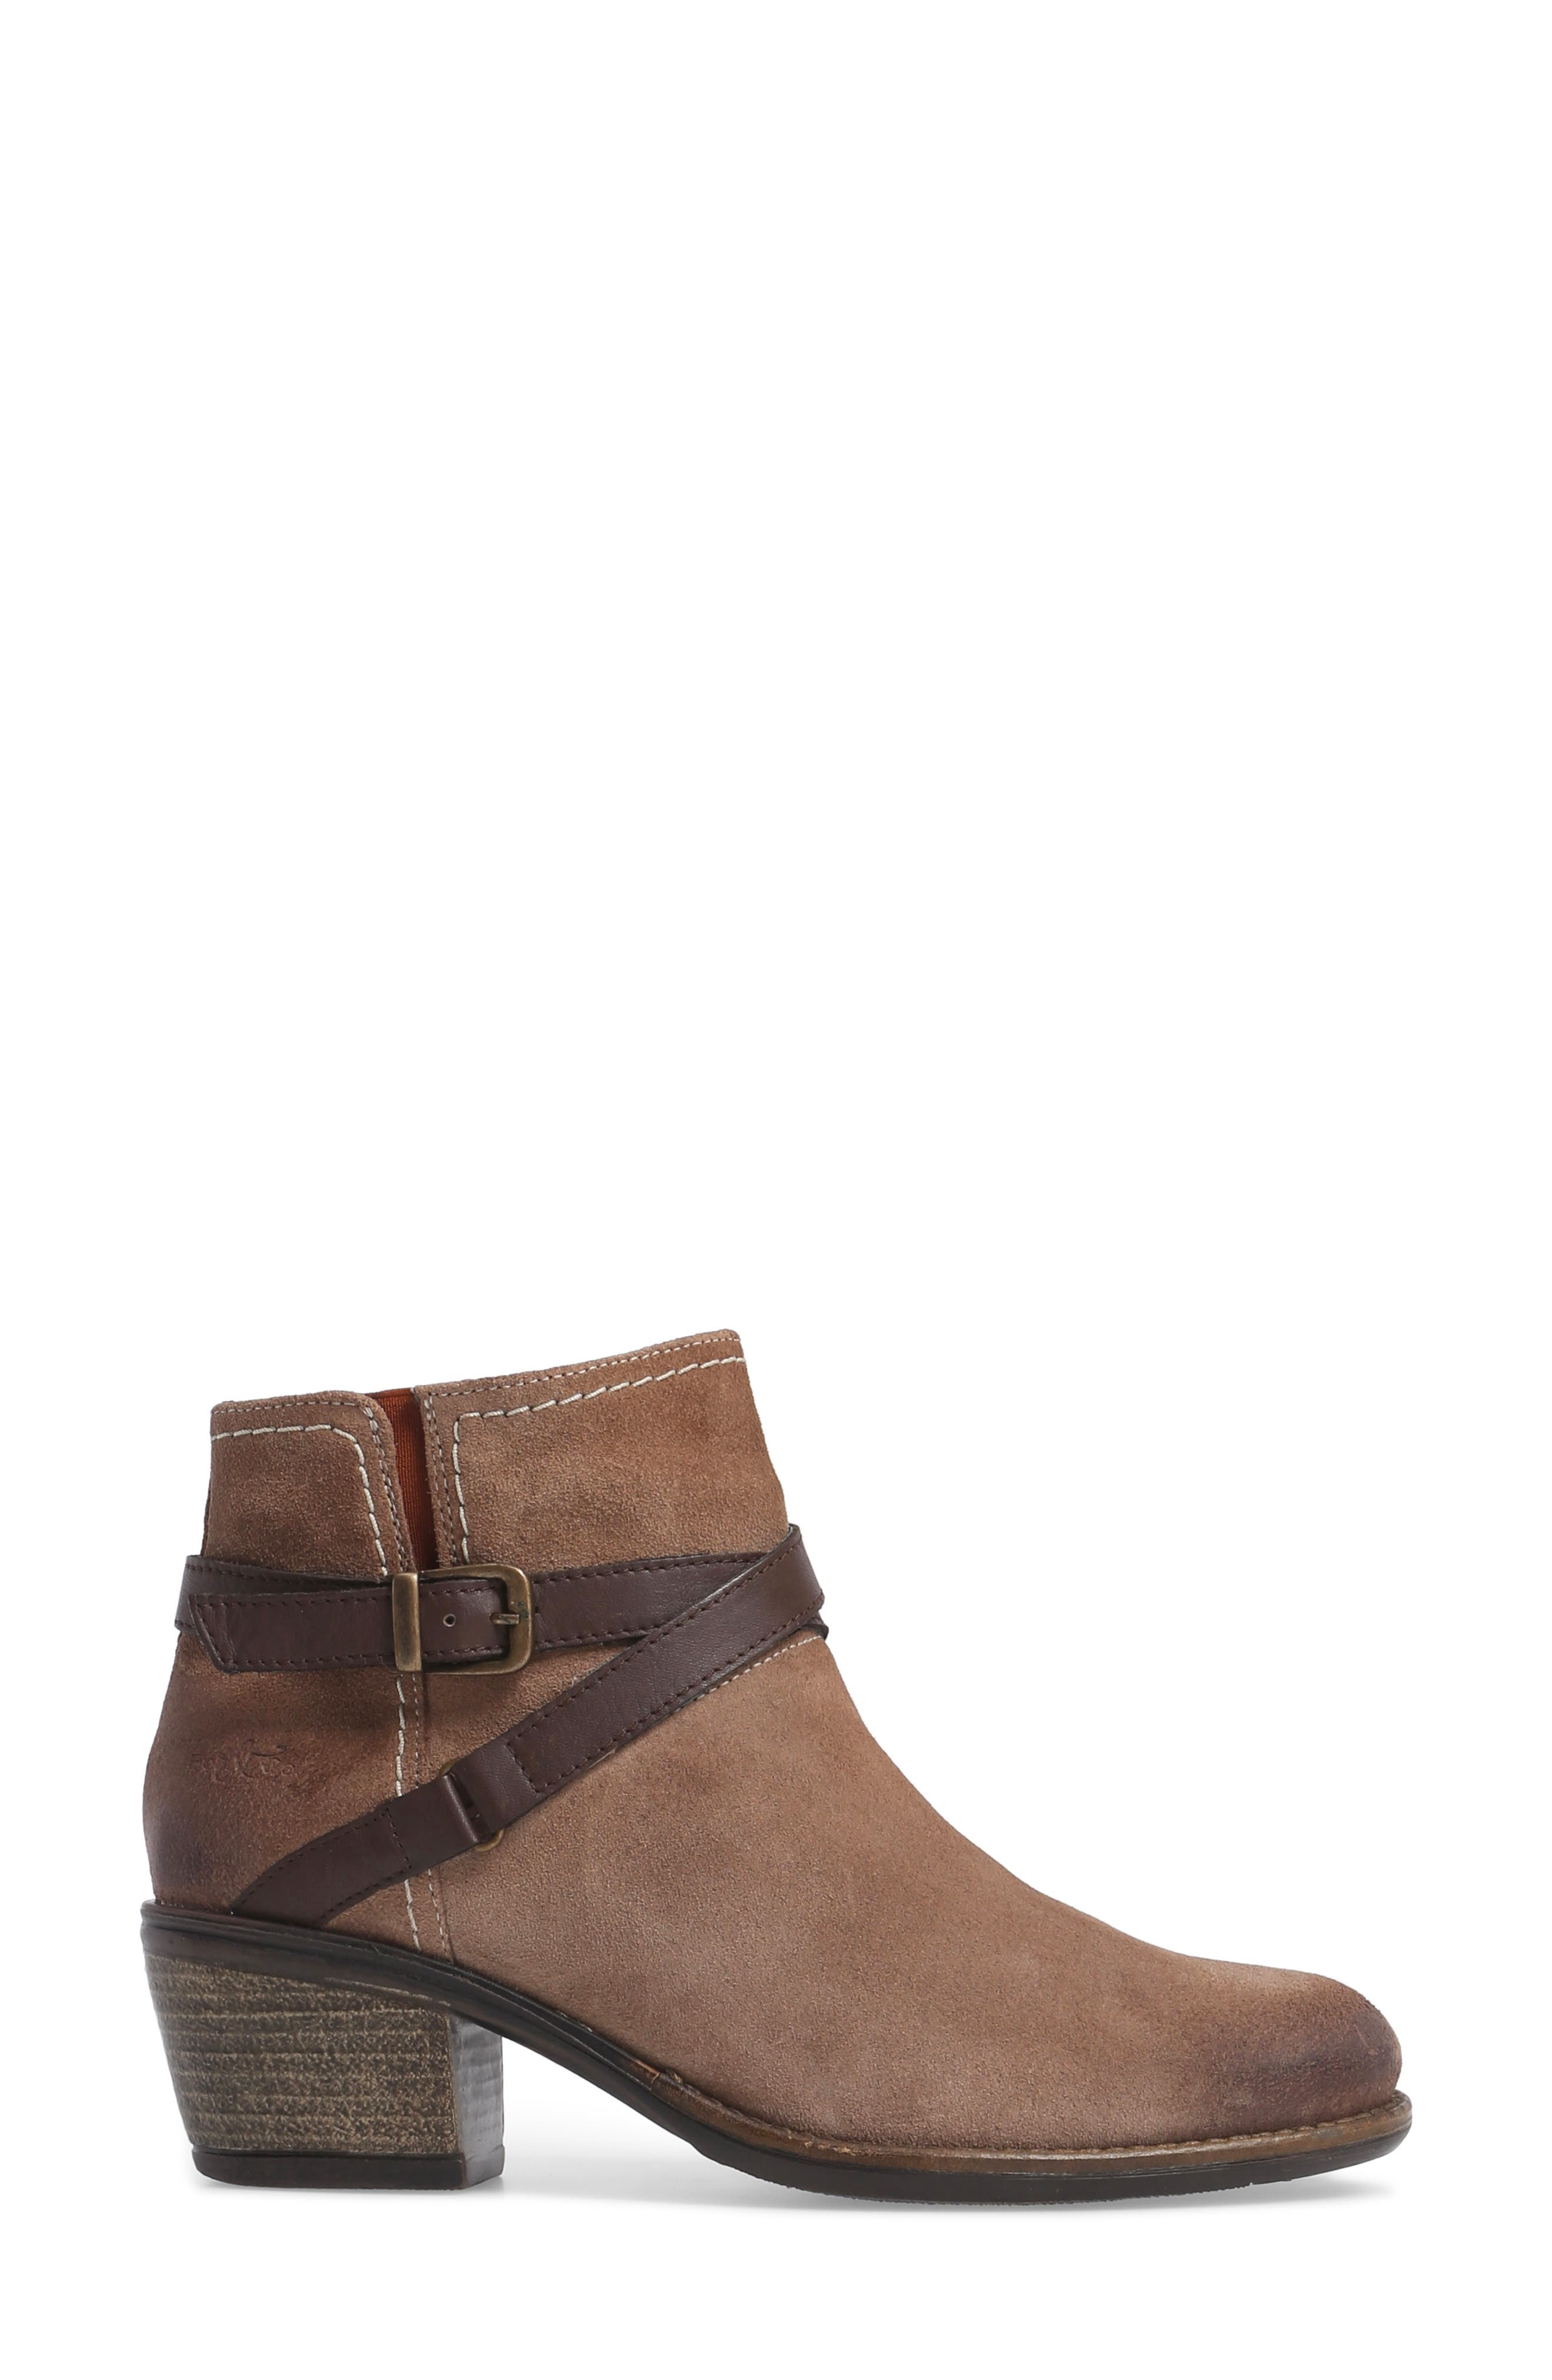 Greenville Waterproof Bootie,                             Alternate thumbnail 3, color,                             Taupe